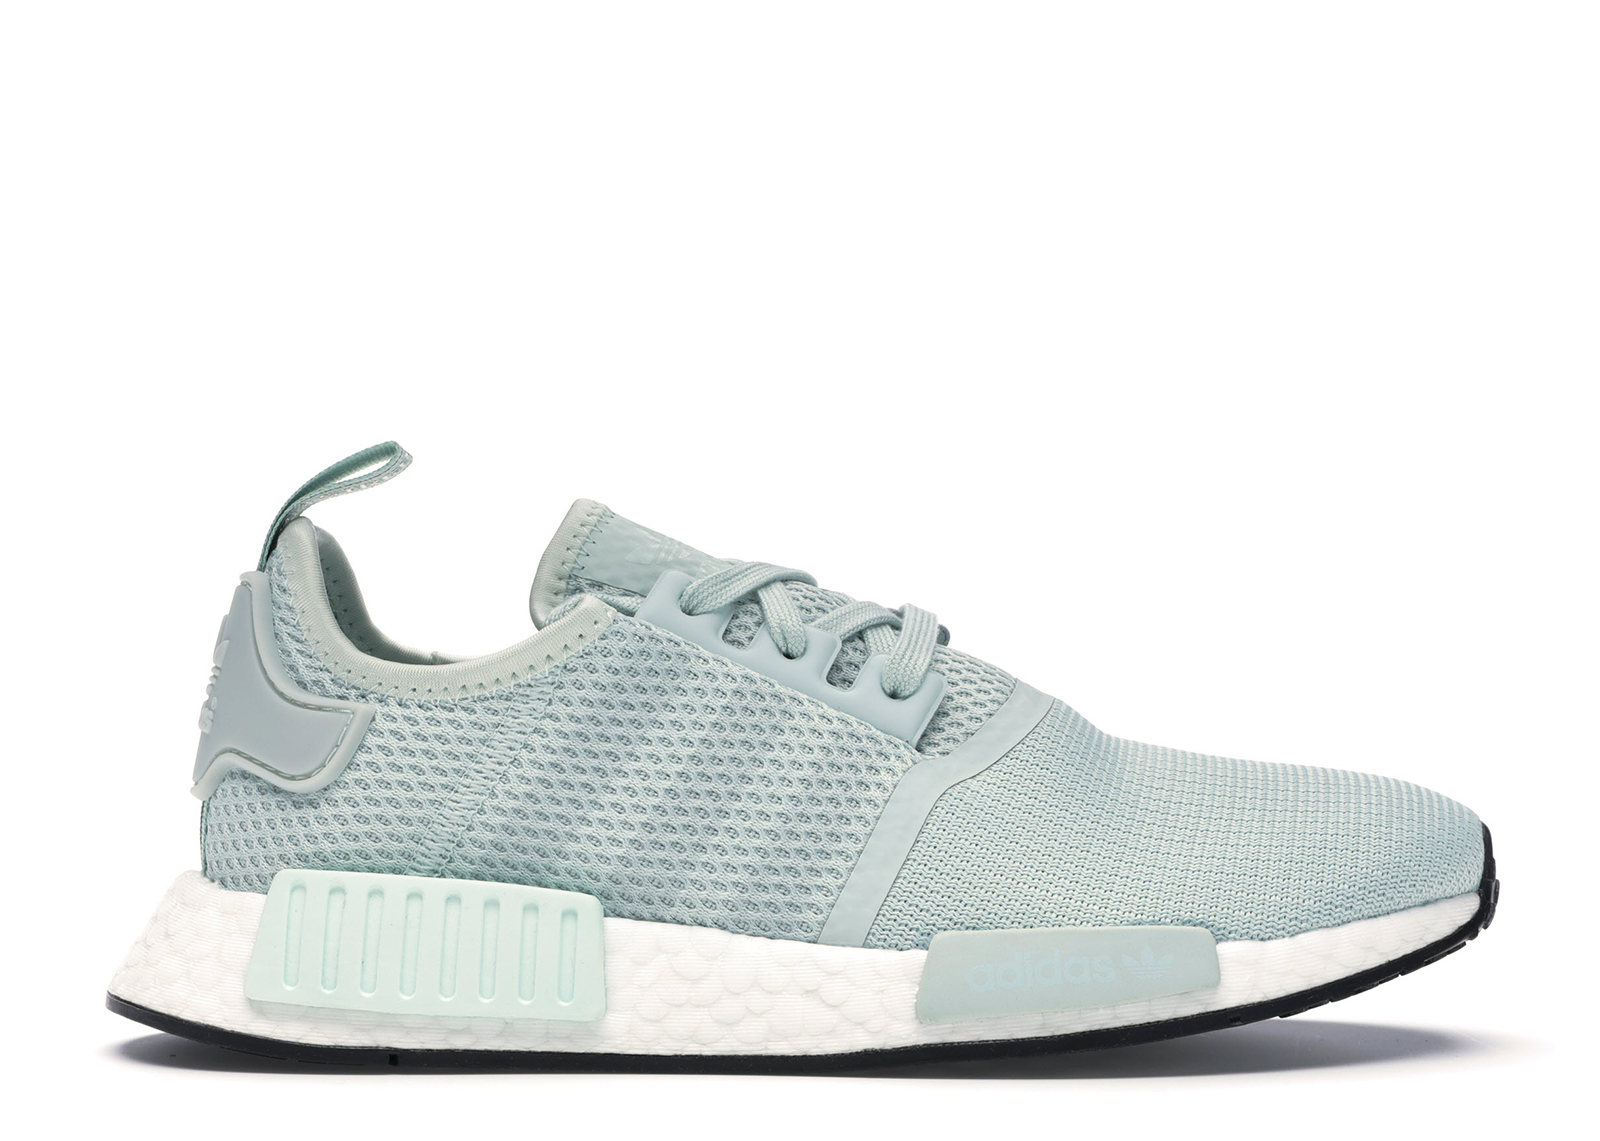 adidas nmd r1 mint green